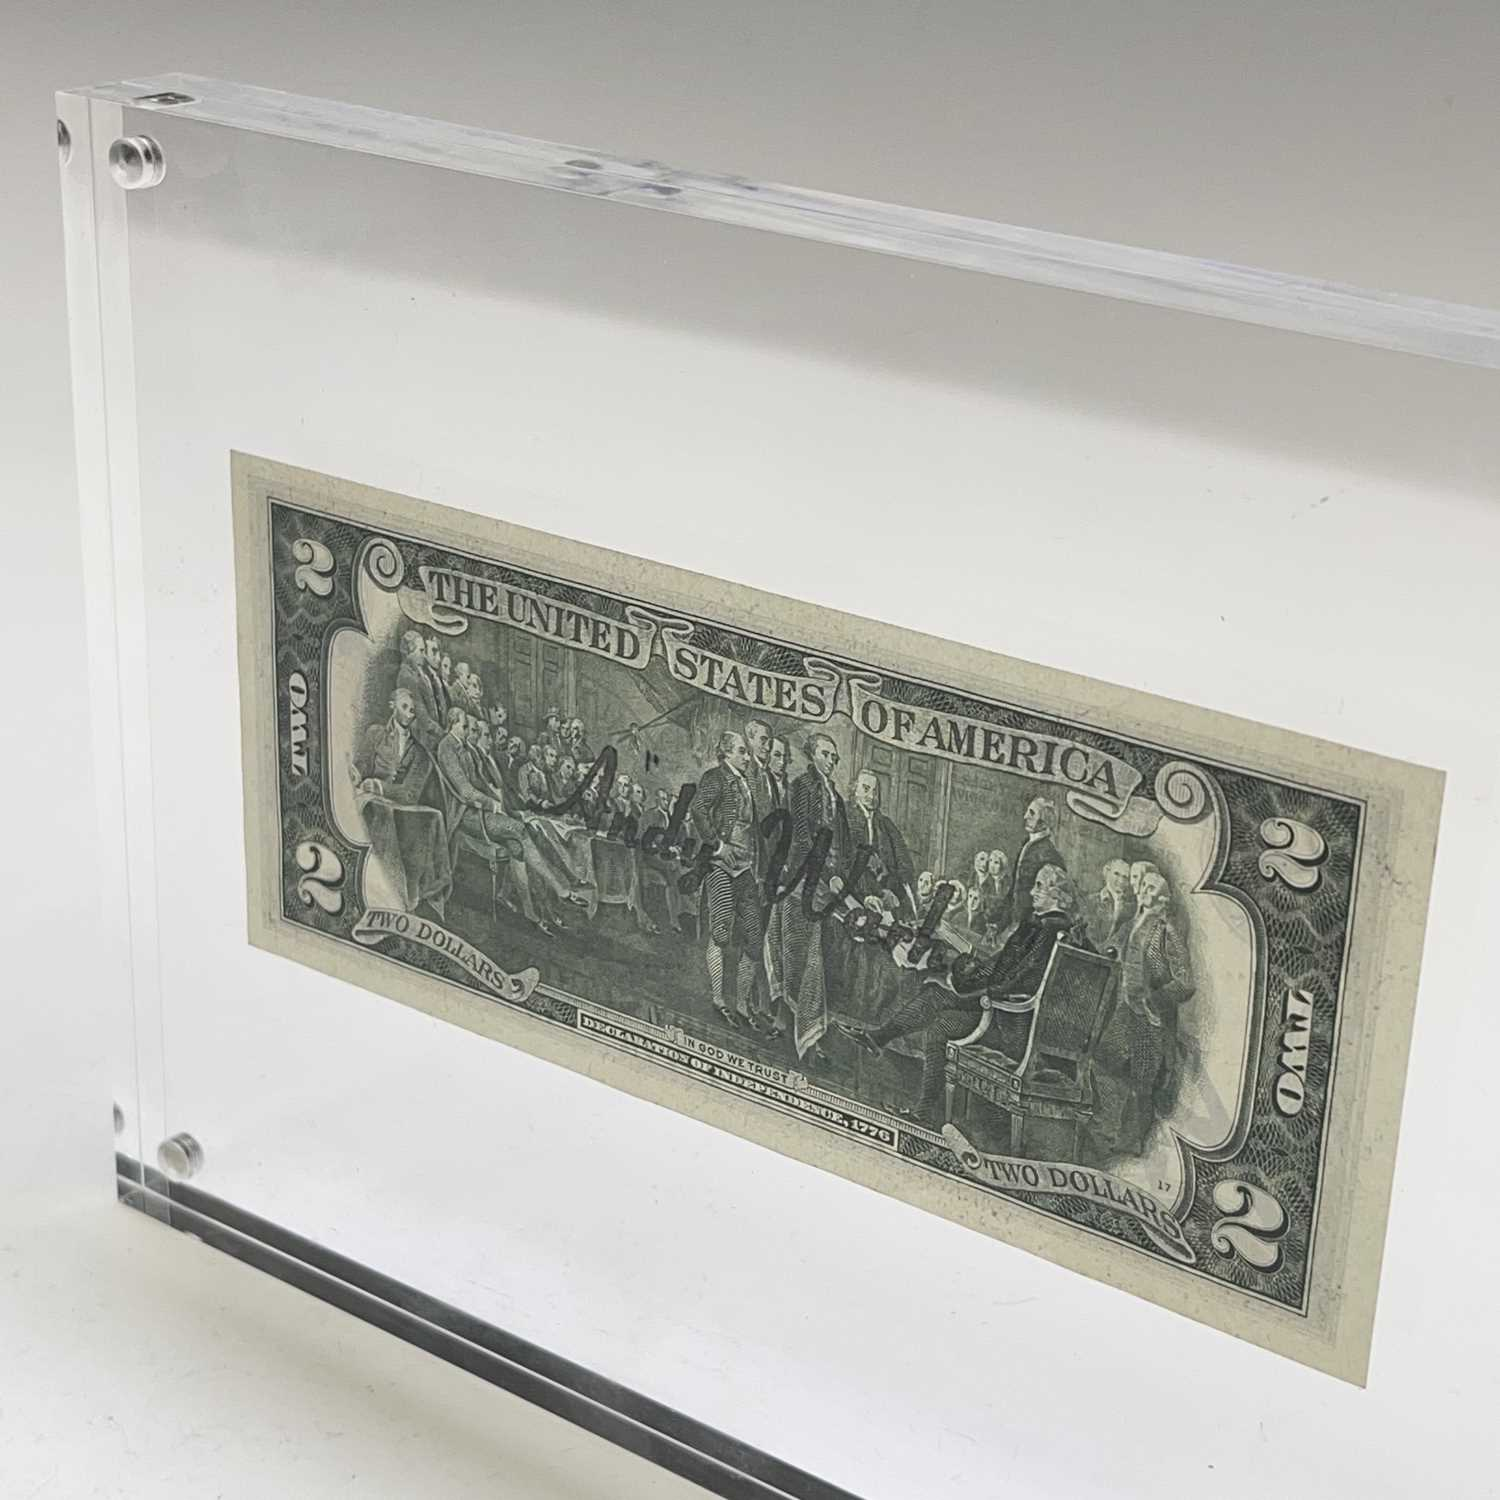 After Andy Warhol, a two-dollar banknote, bears signature, together with accompanying paperwork. - Image 9 of 14